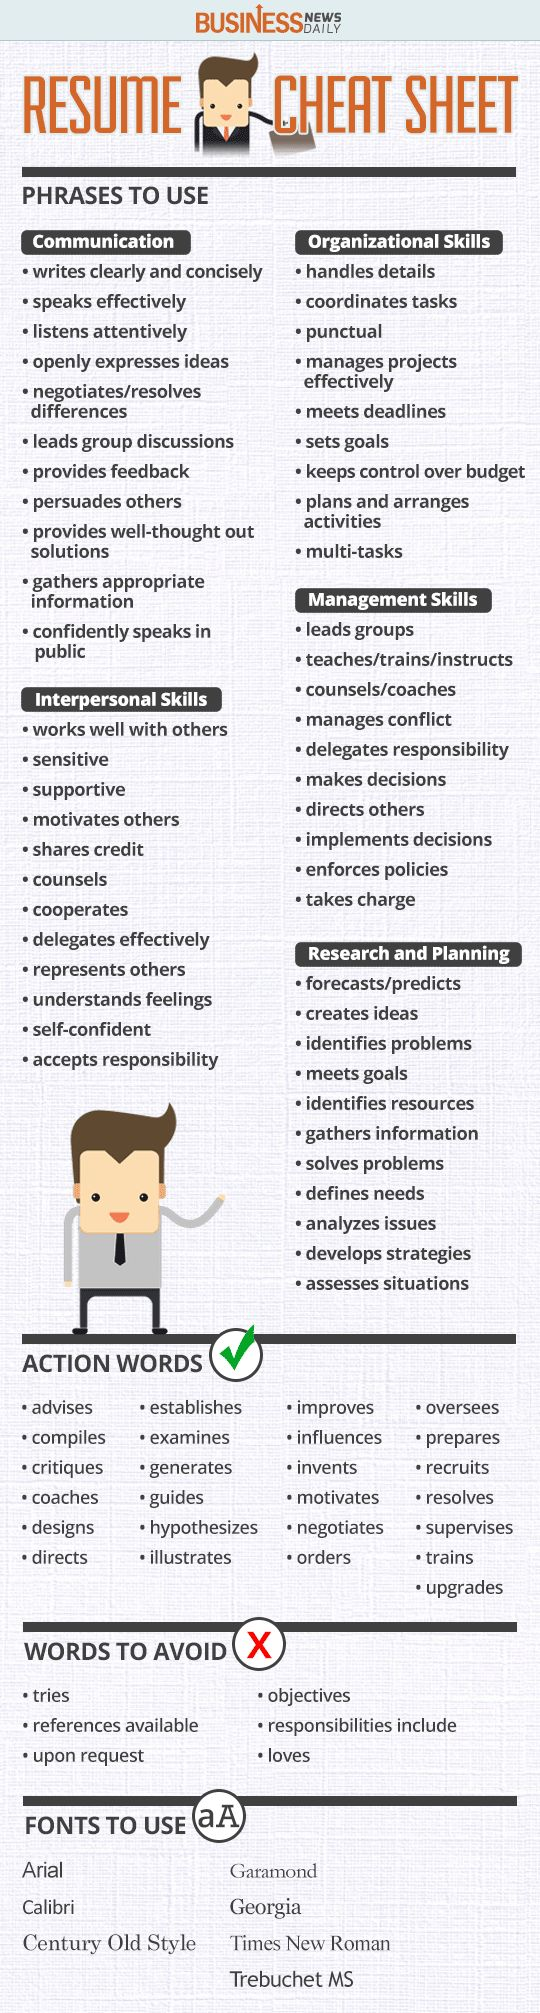 resume cheat sheet infographic andrews almost done with a complete unit on employment which